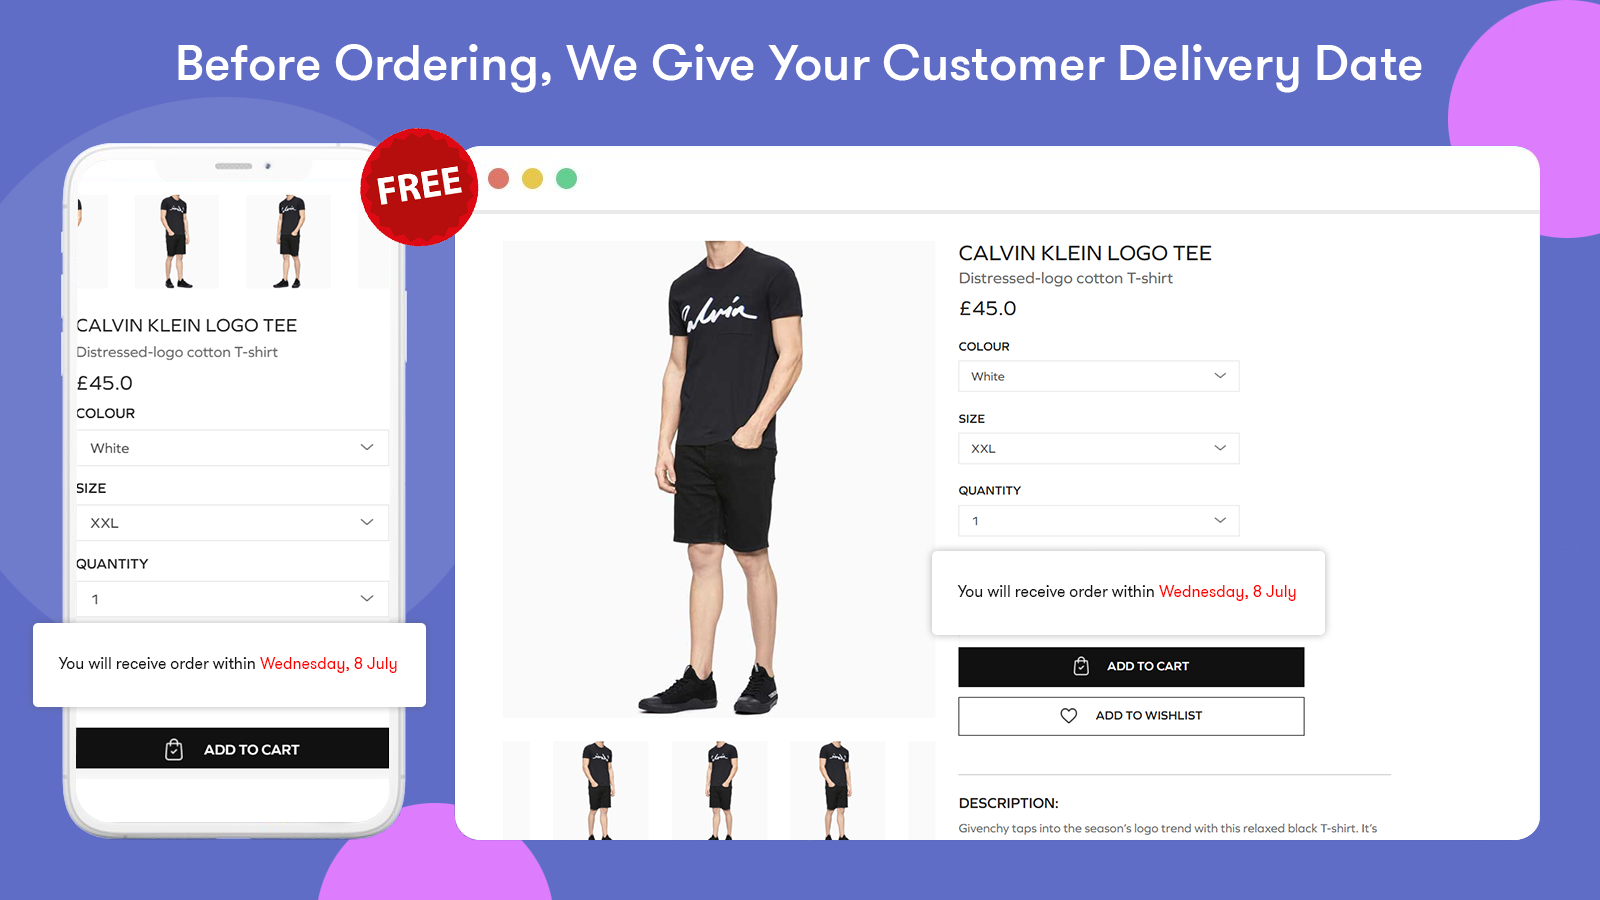 Before ordering, We give your customer delivery date